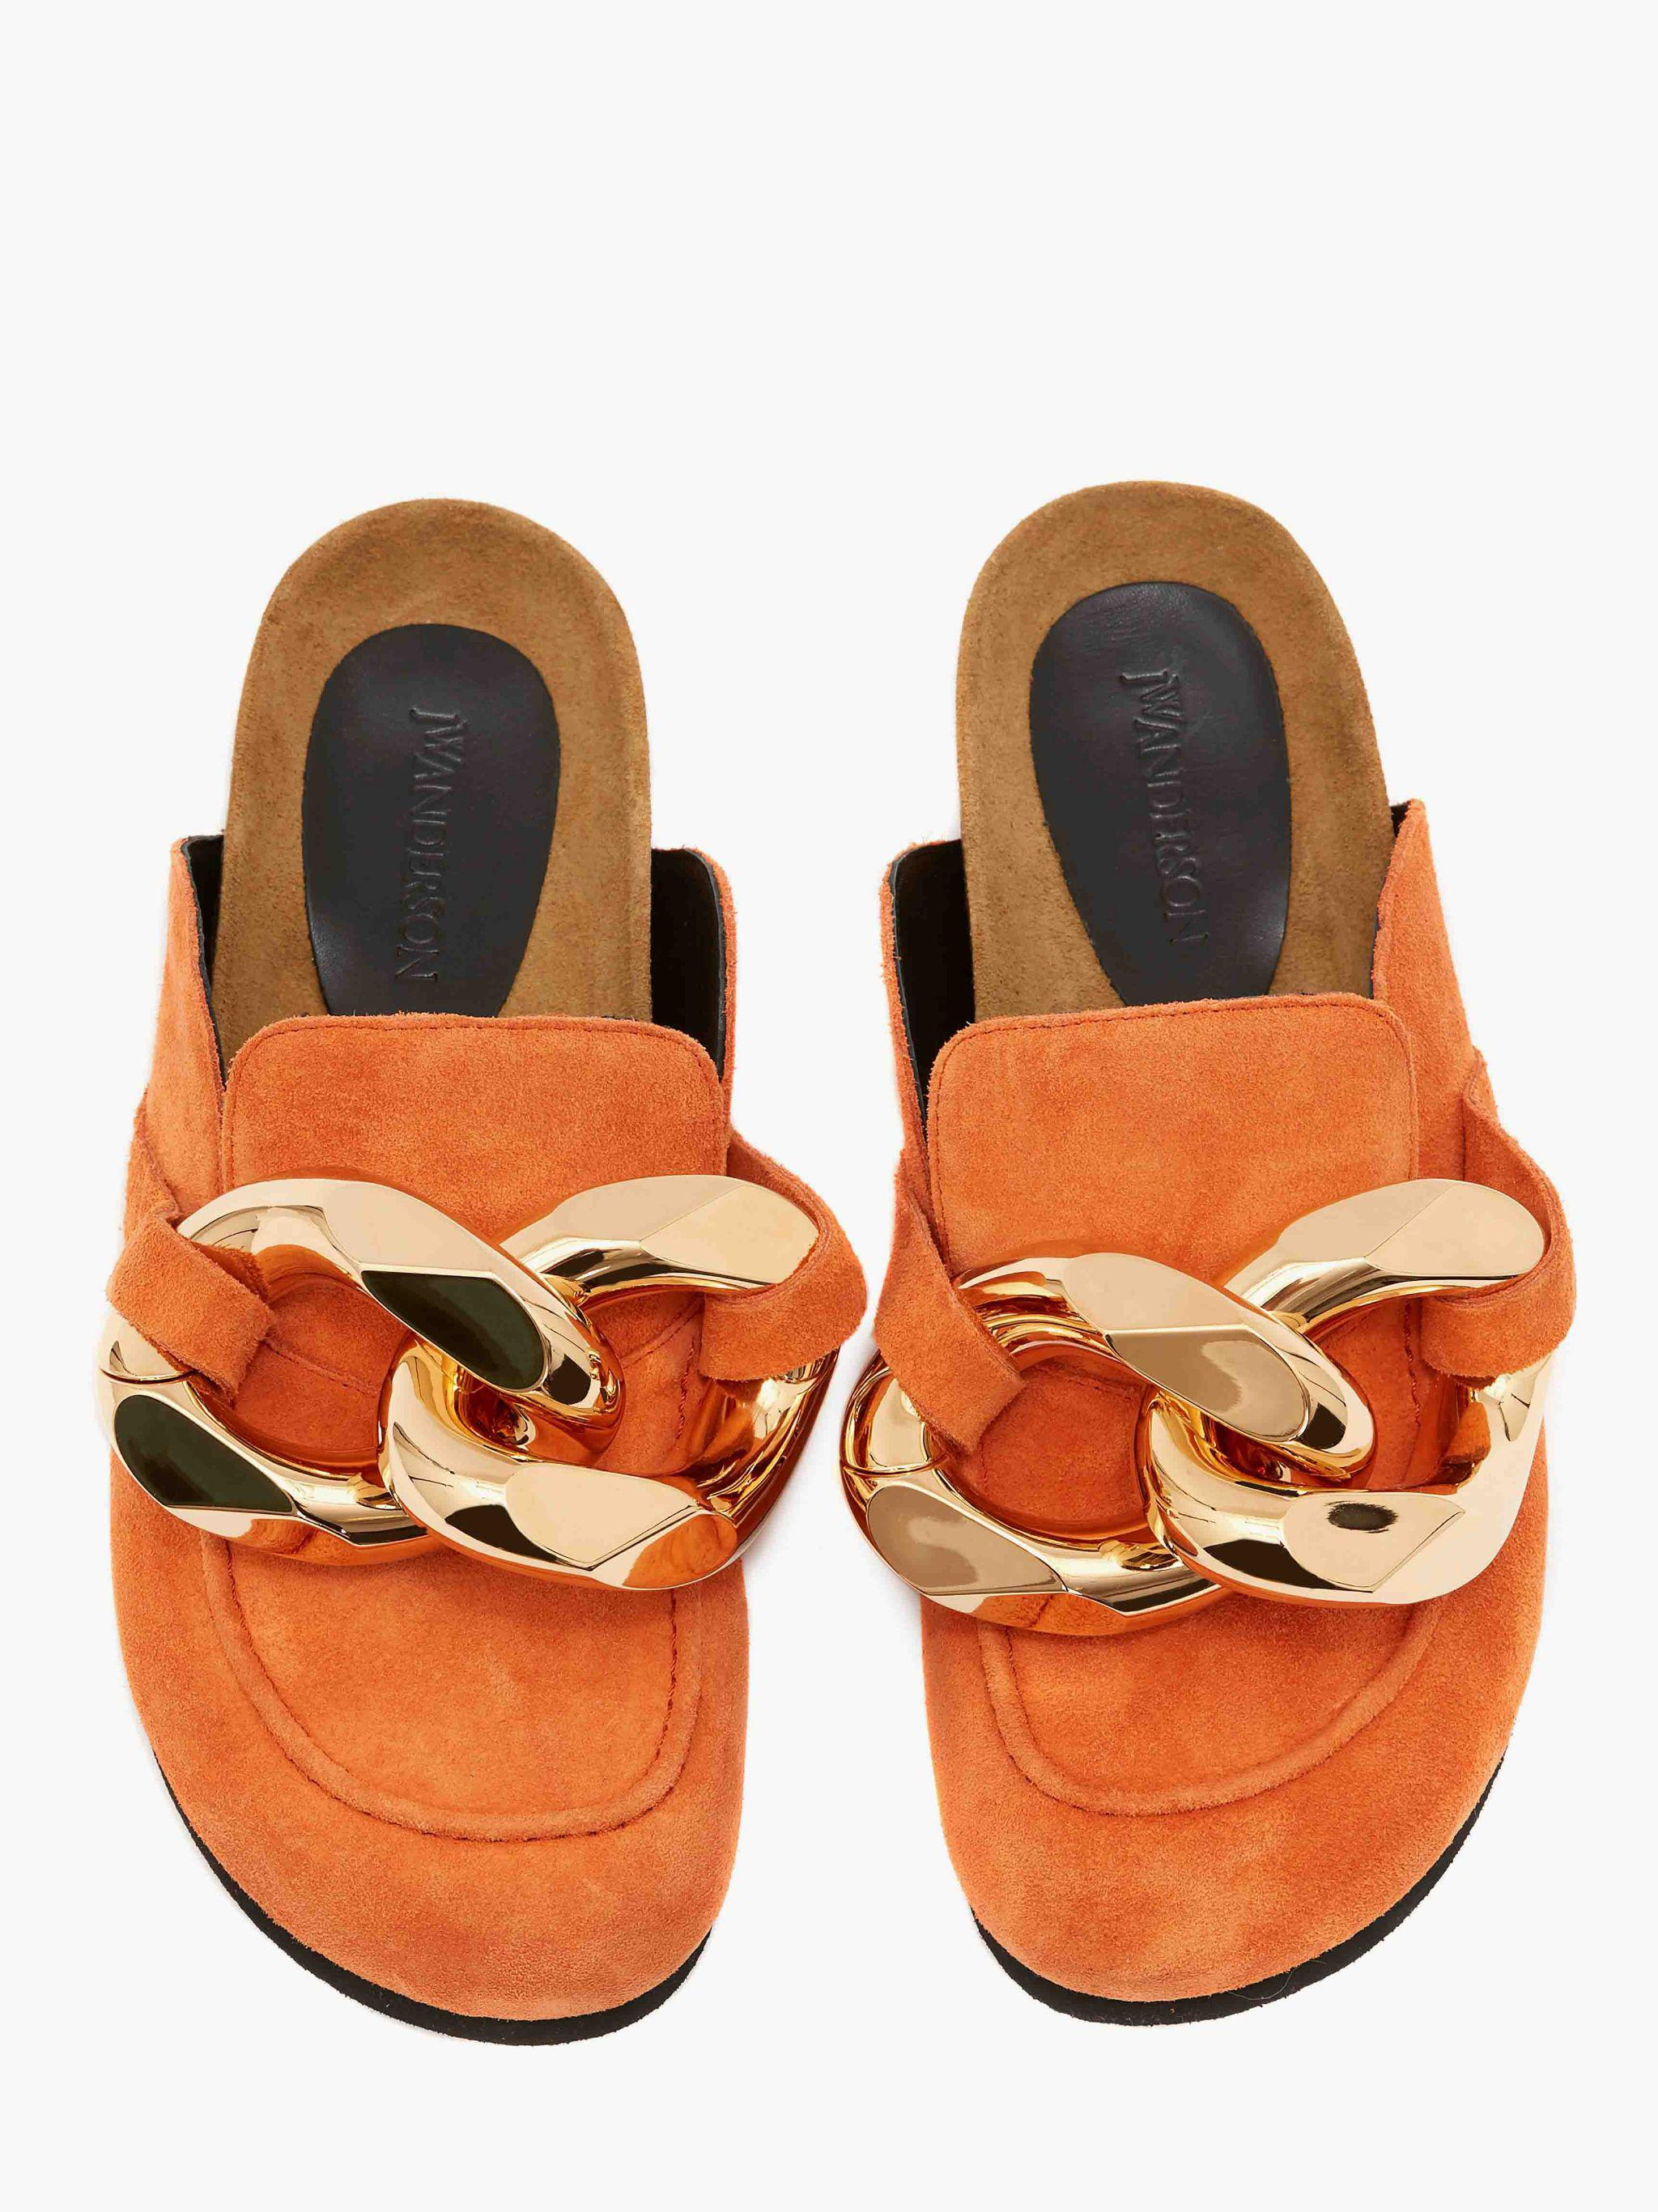 WOMEN'S CHAIN LOAFER - SUEDE 3